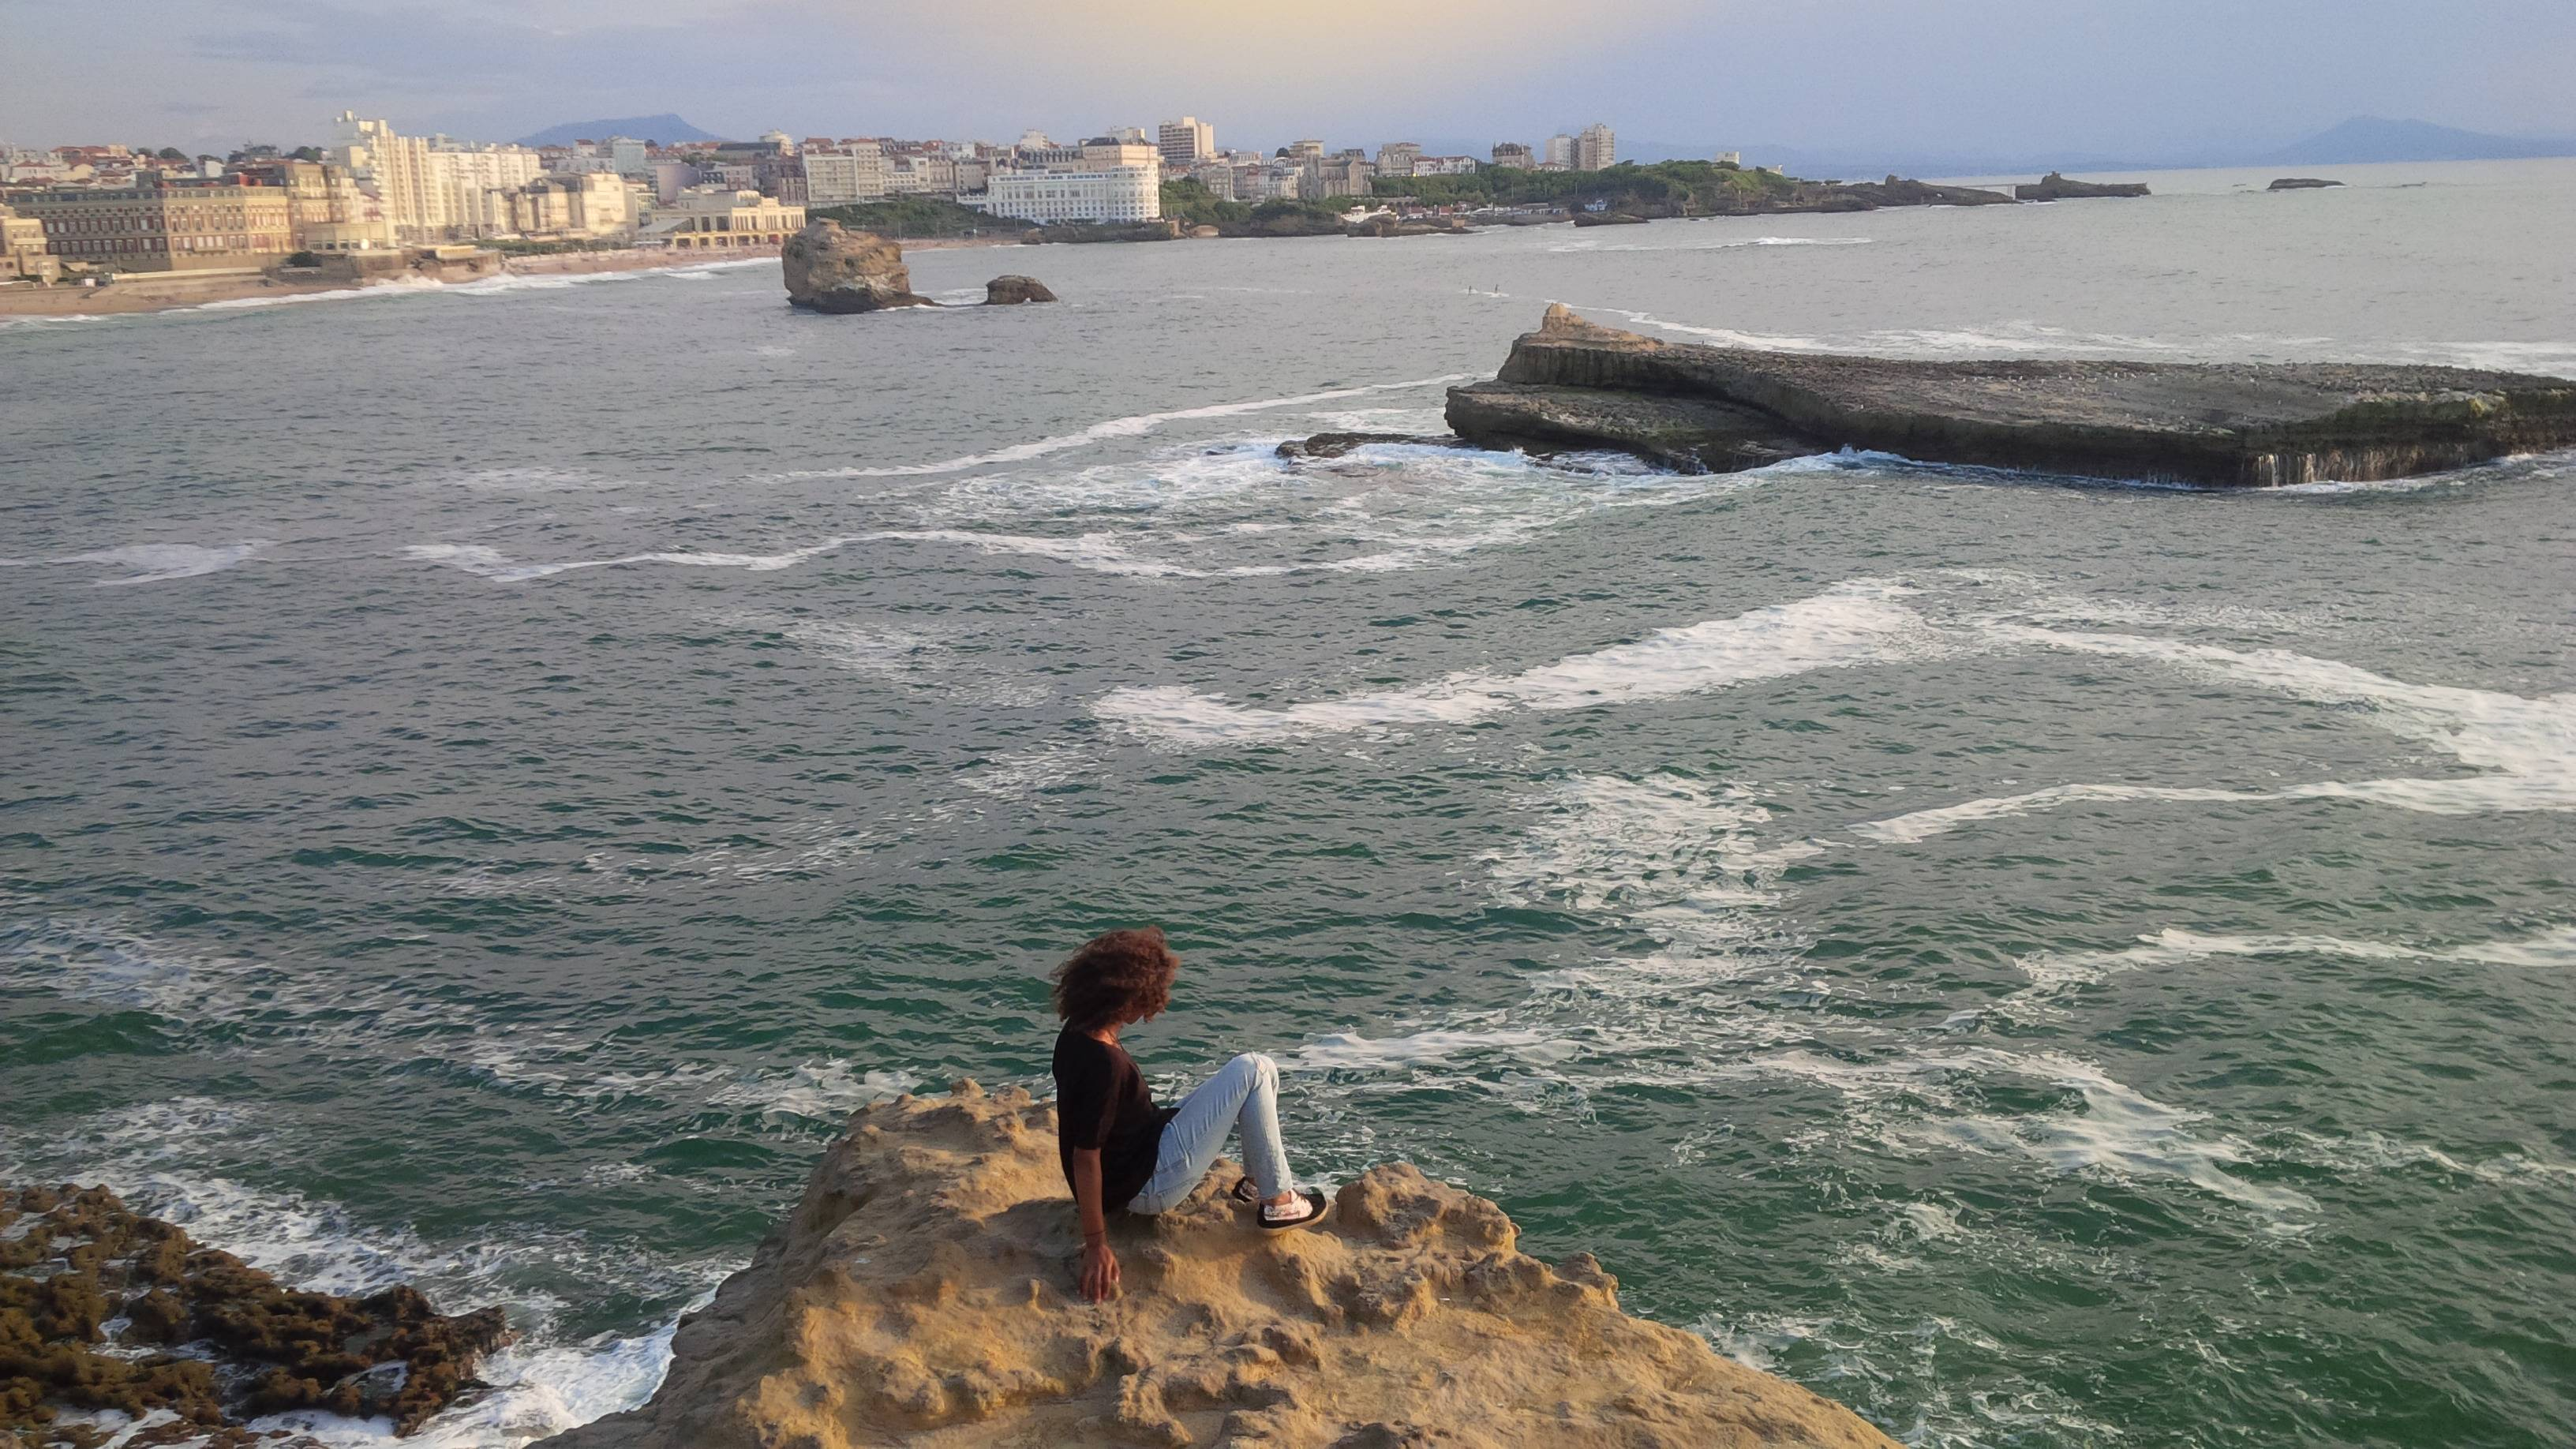 Photo 1: Splendide vue au pied du rocher du phare de Biarritz